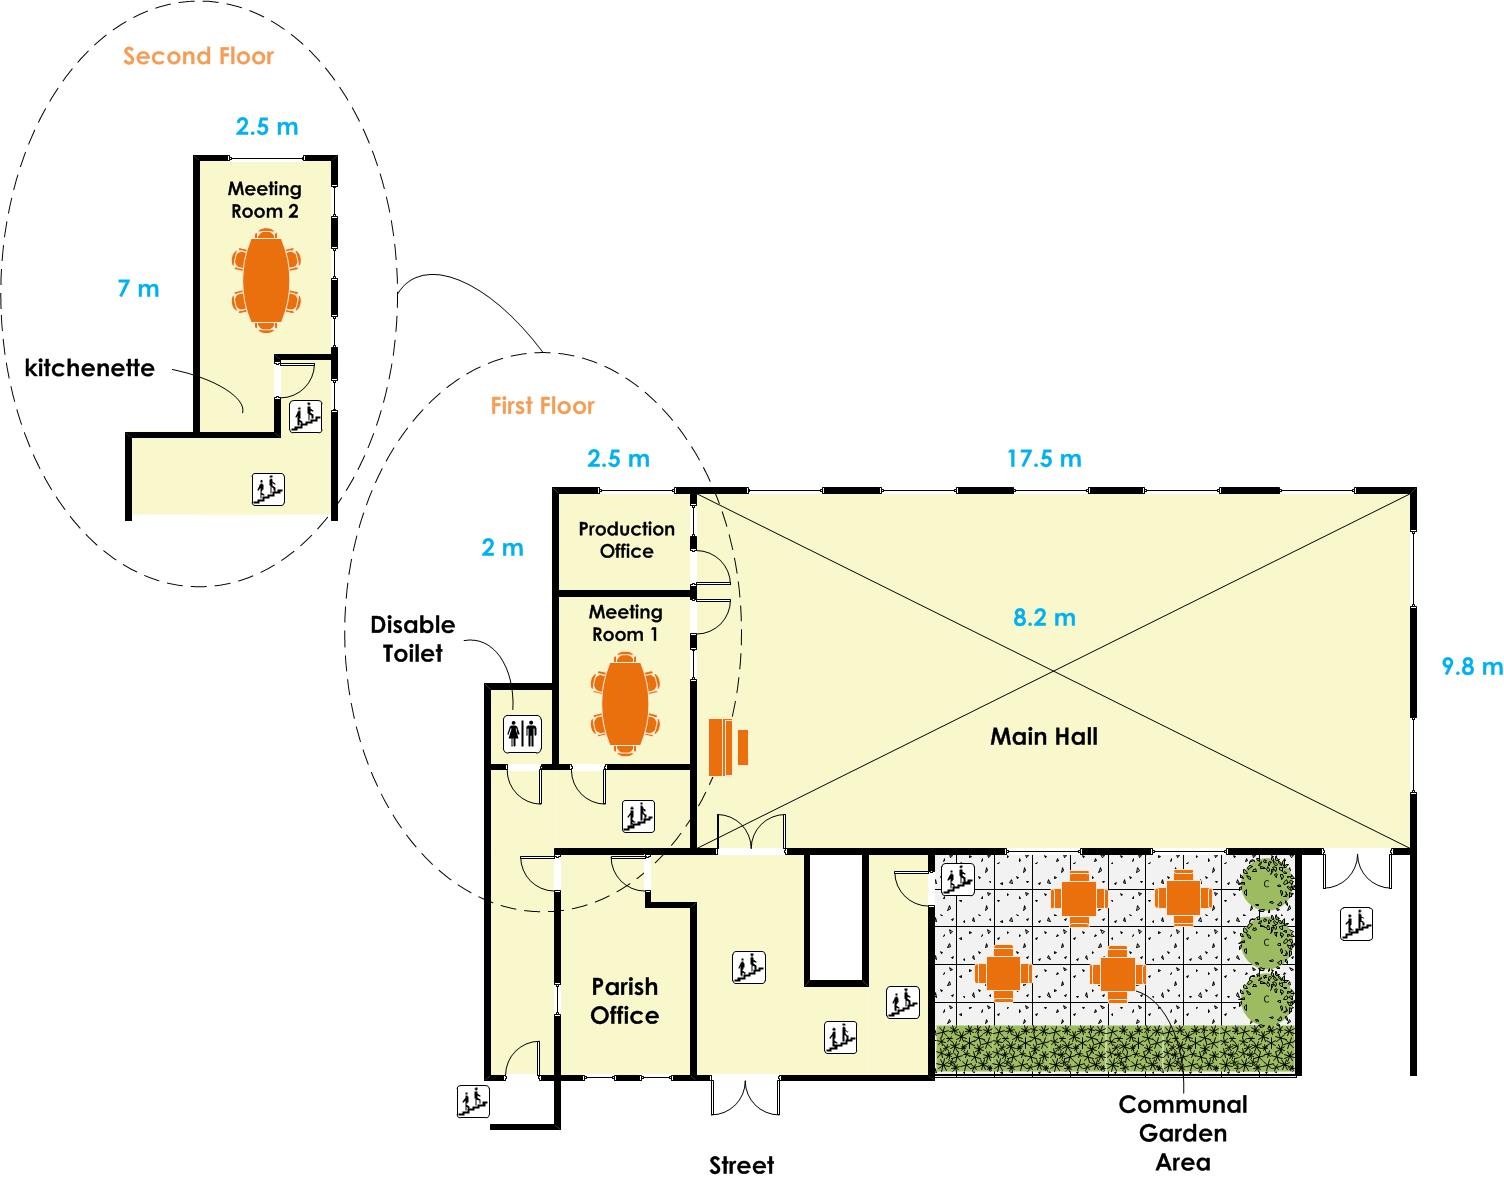 St Gabriel's Hall - Main Hall Floor Plan